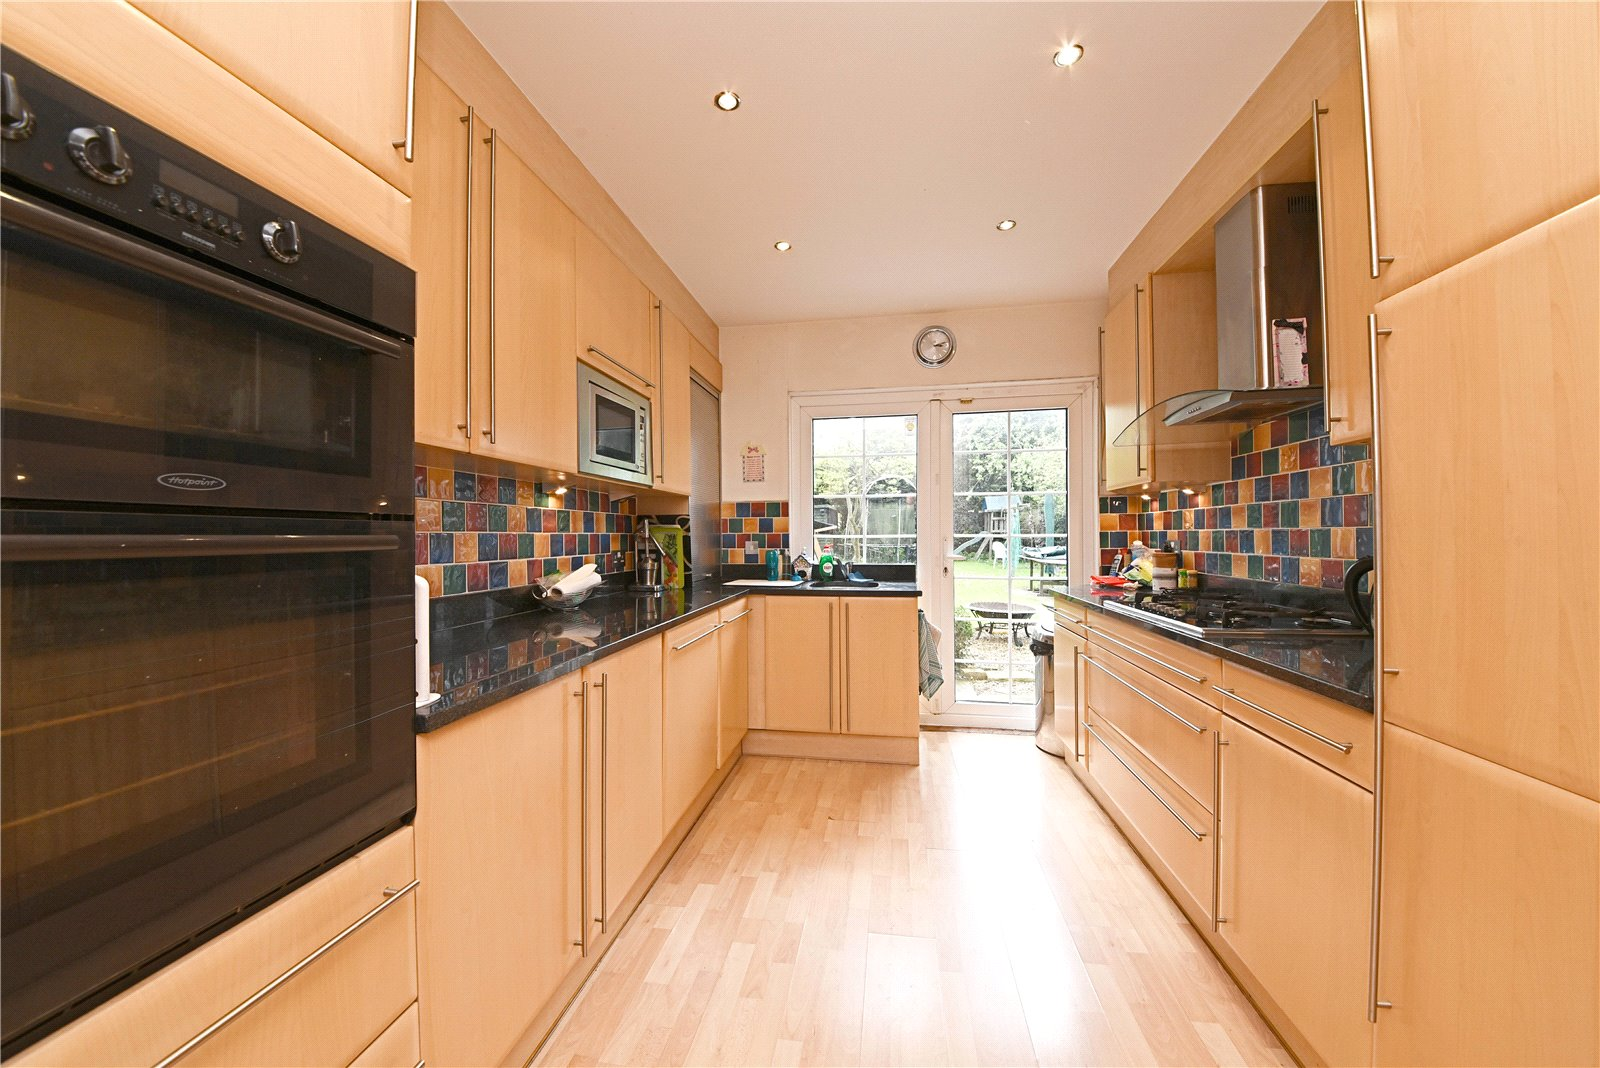 5 bed house for sale in Southgate, N14 4PX  - Property Image 3